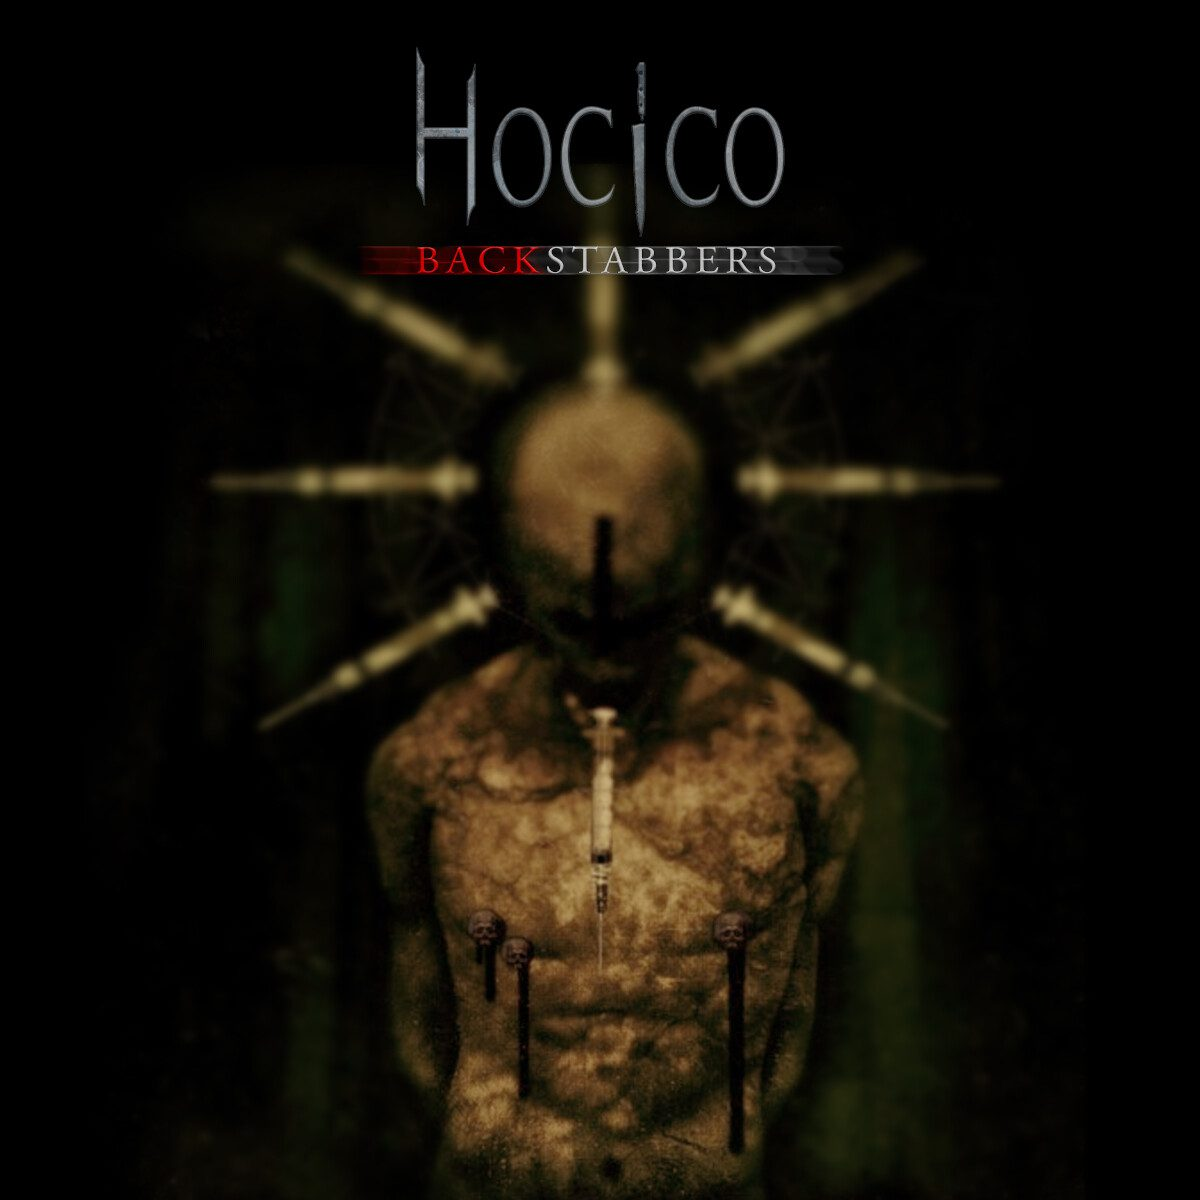 Hocico release new video for 'Backstabbers' single